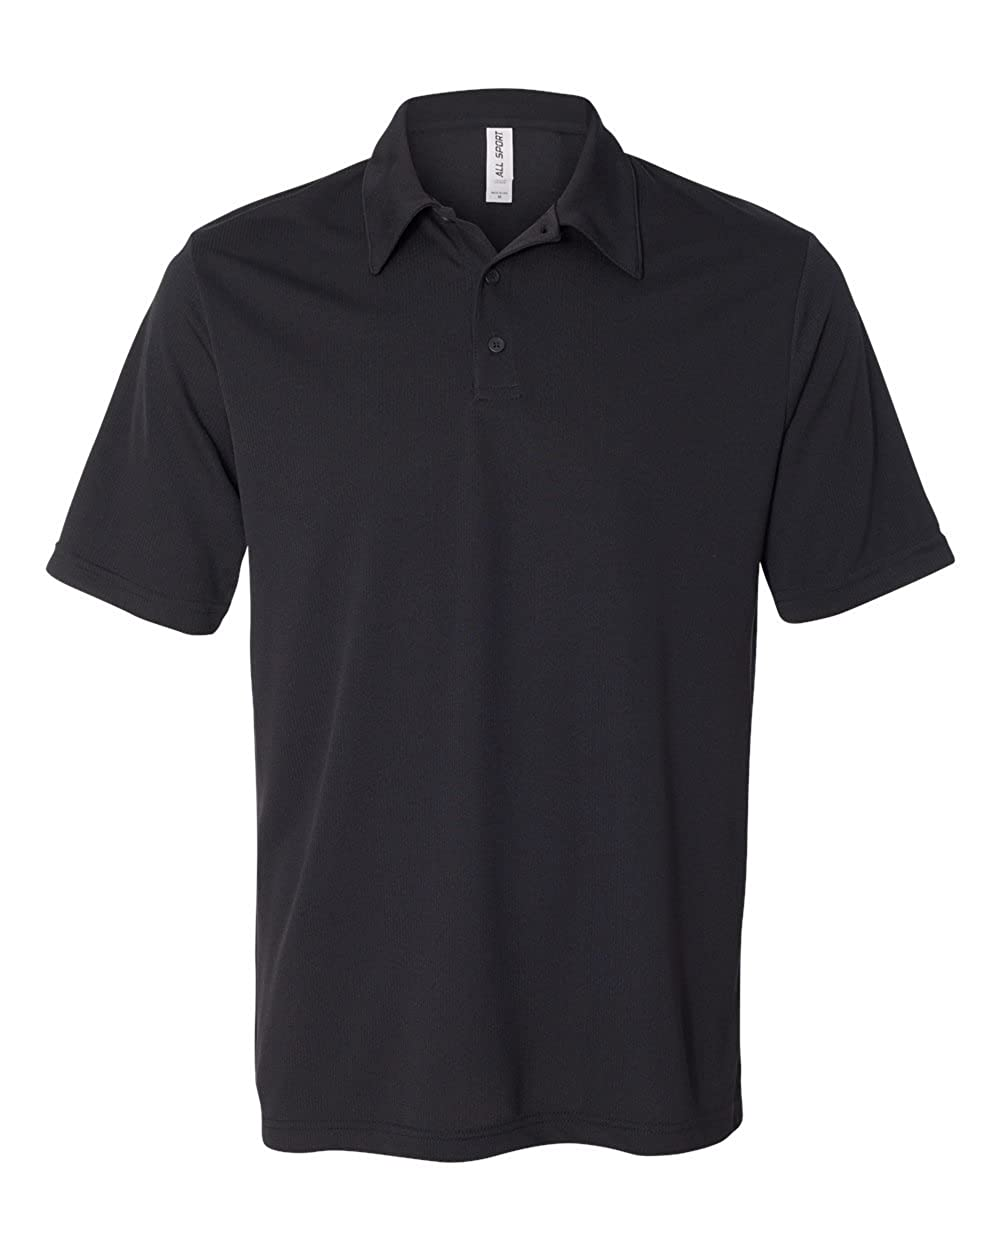 Alo Sport-Mens Performance 3-Button Mesh Polo-M1709